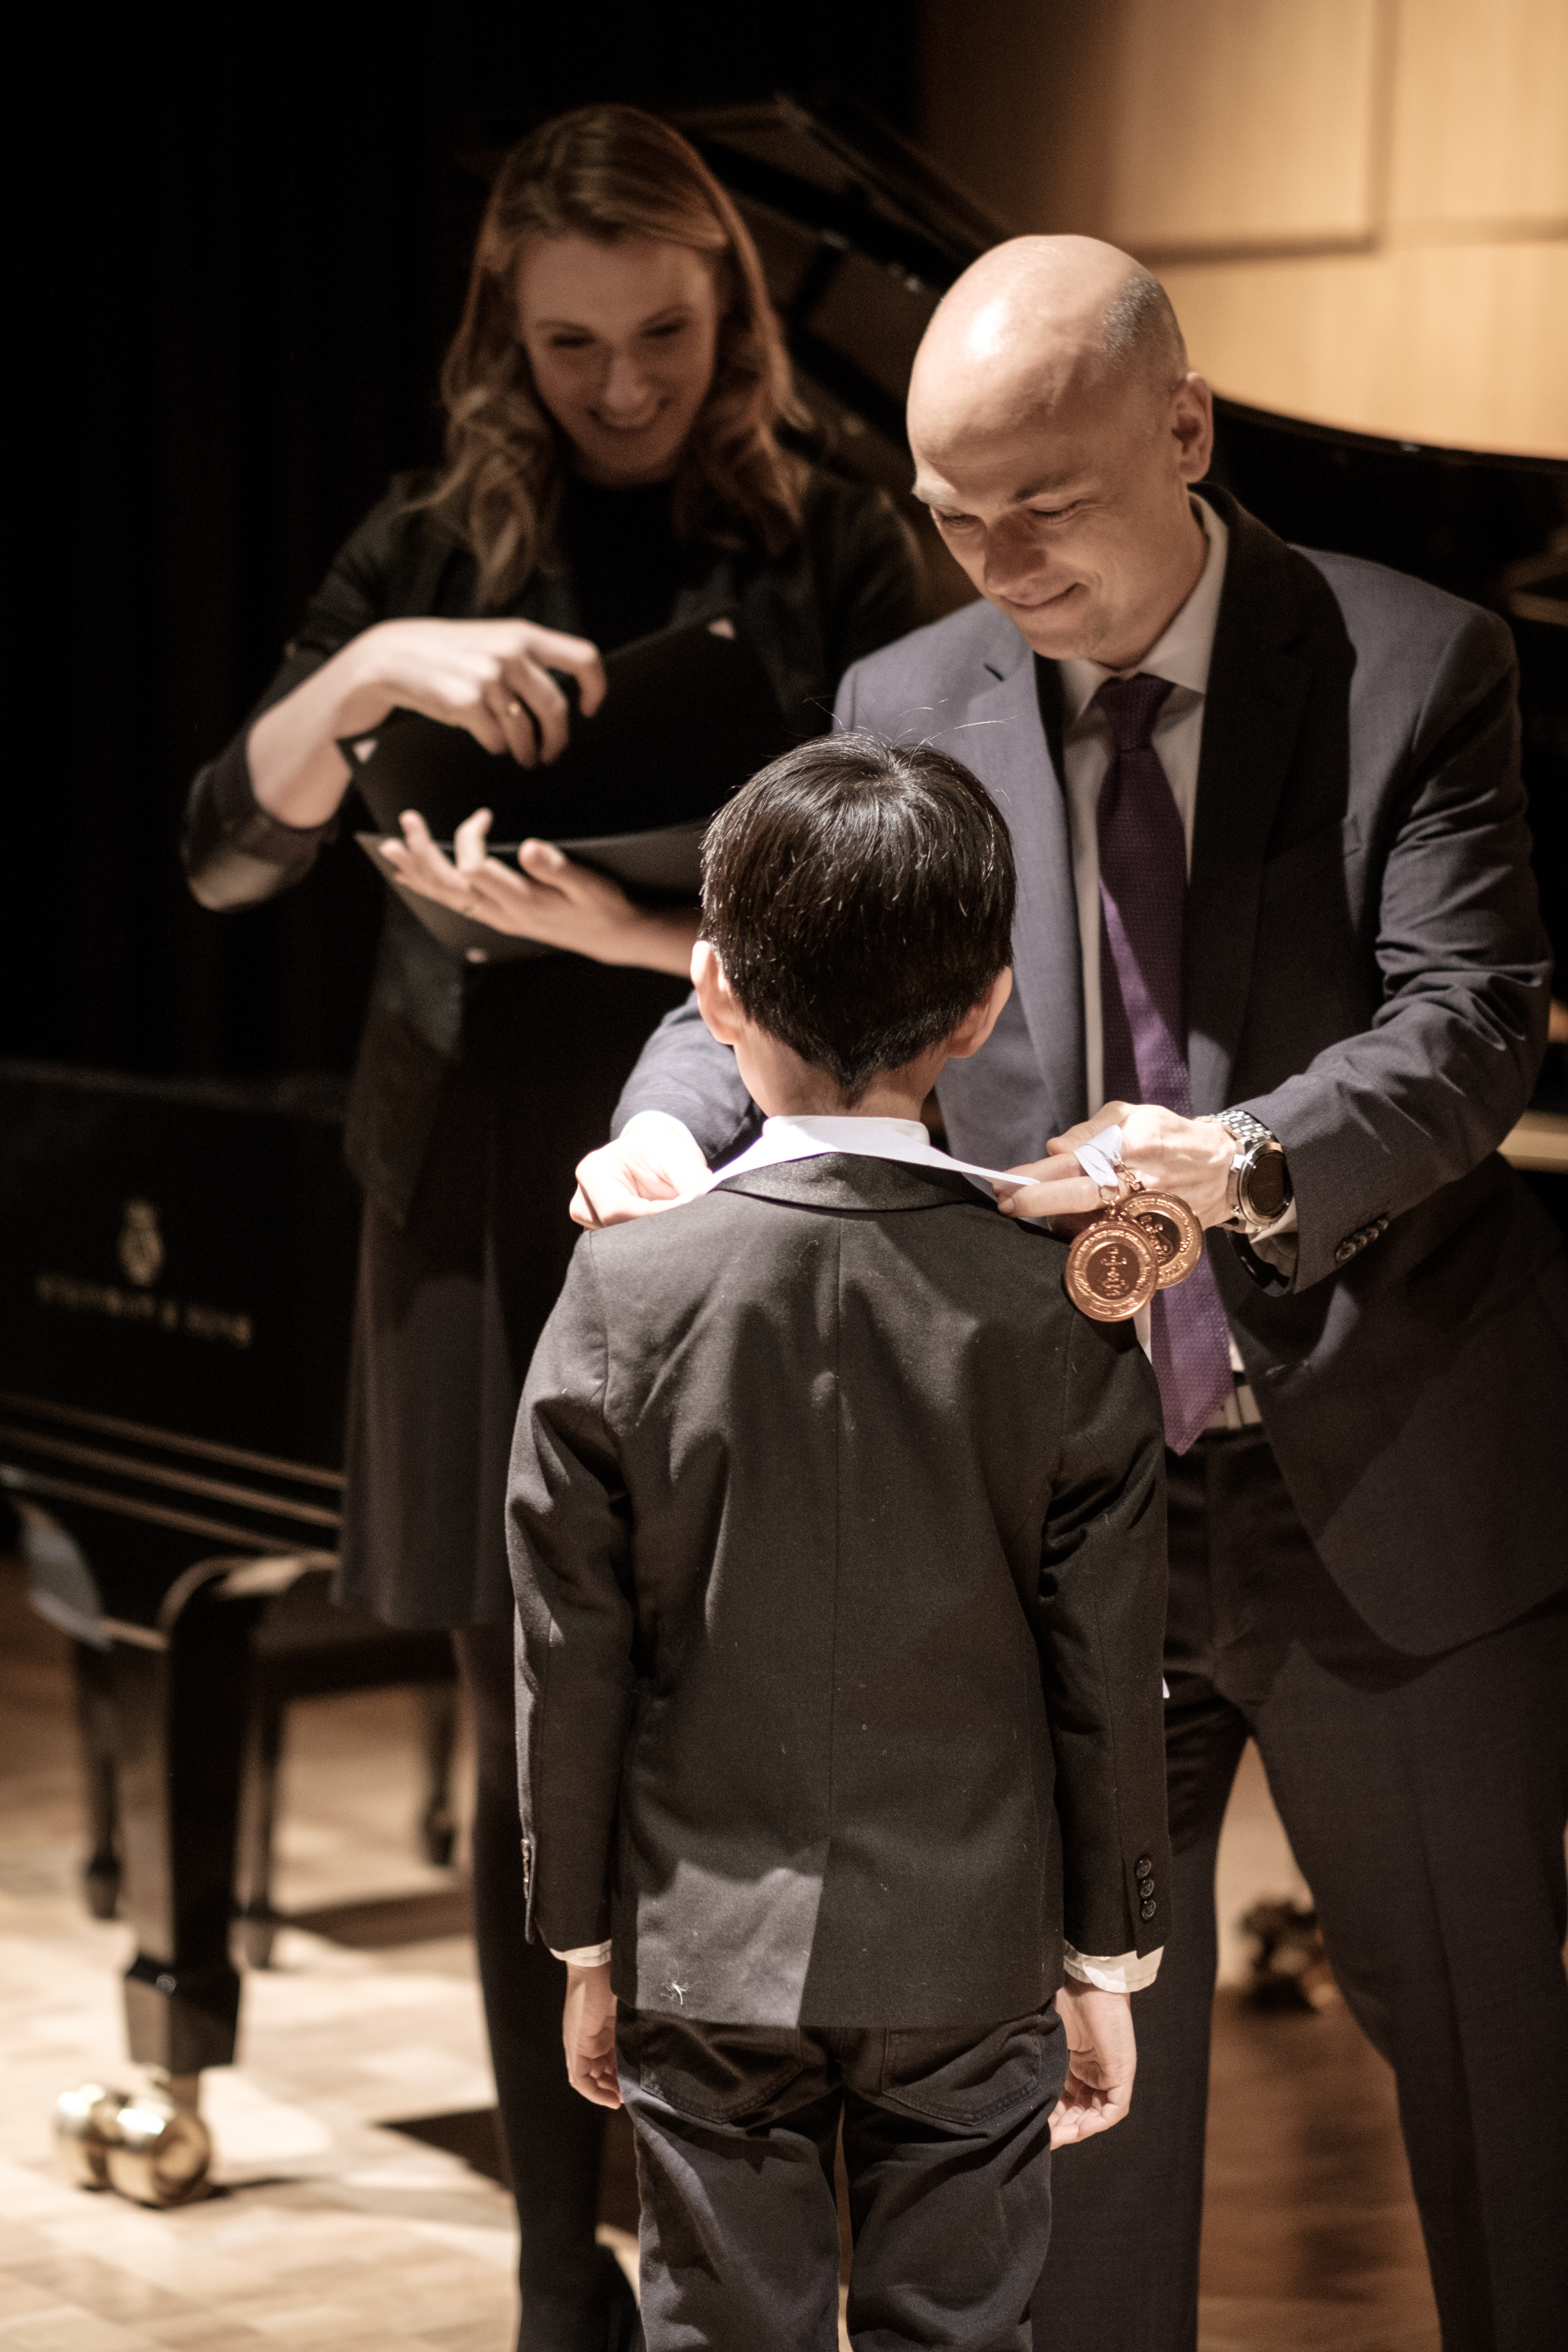 /news/articles/5-ways-piano-competitions-benefit-students